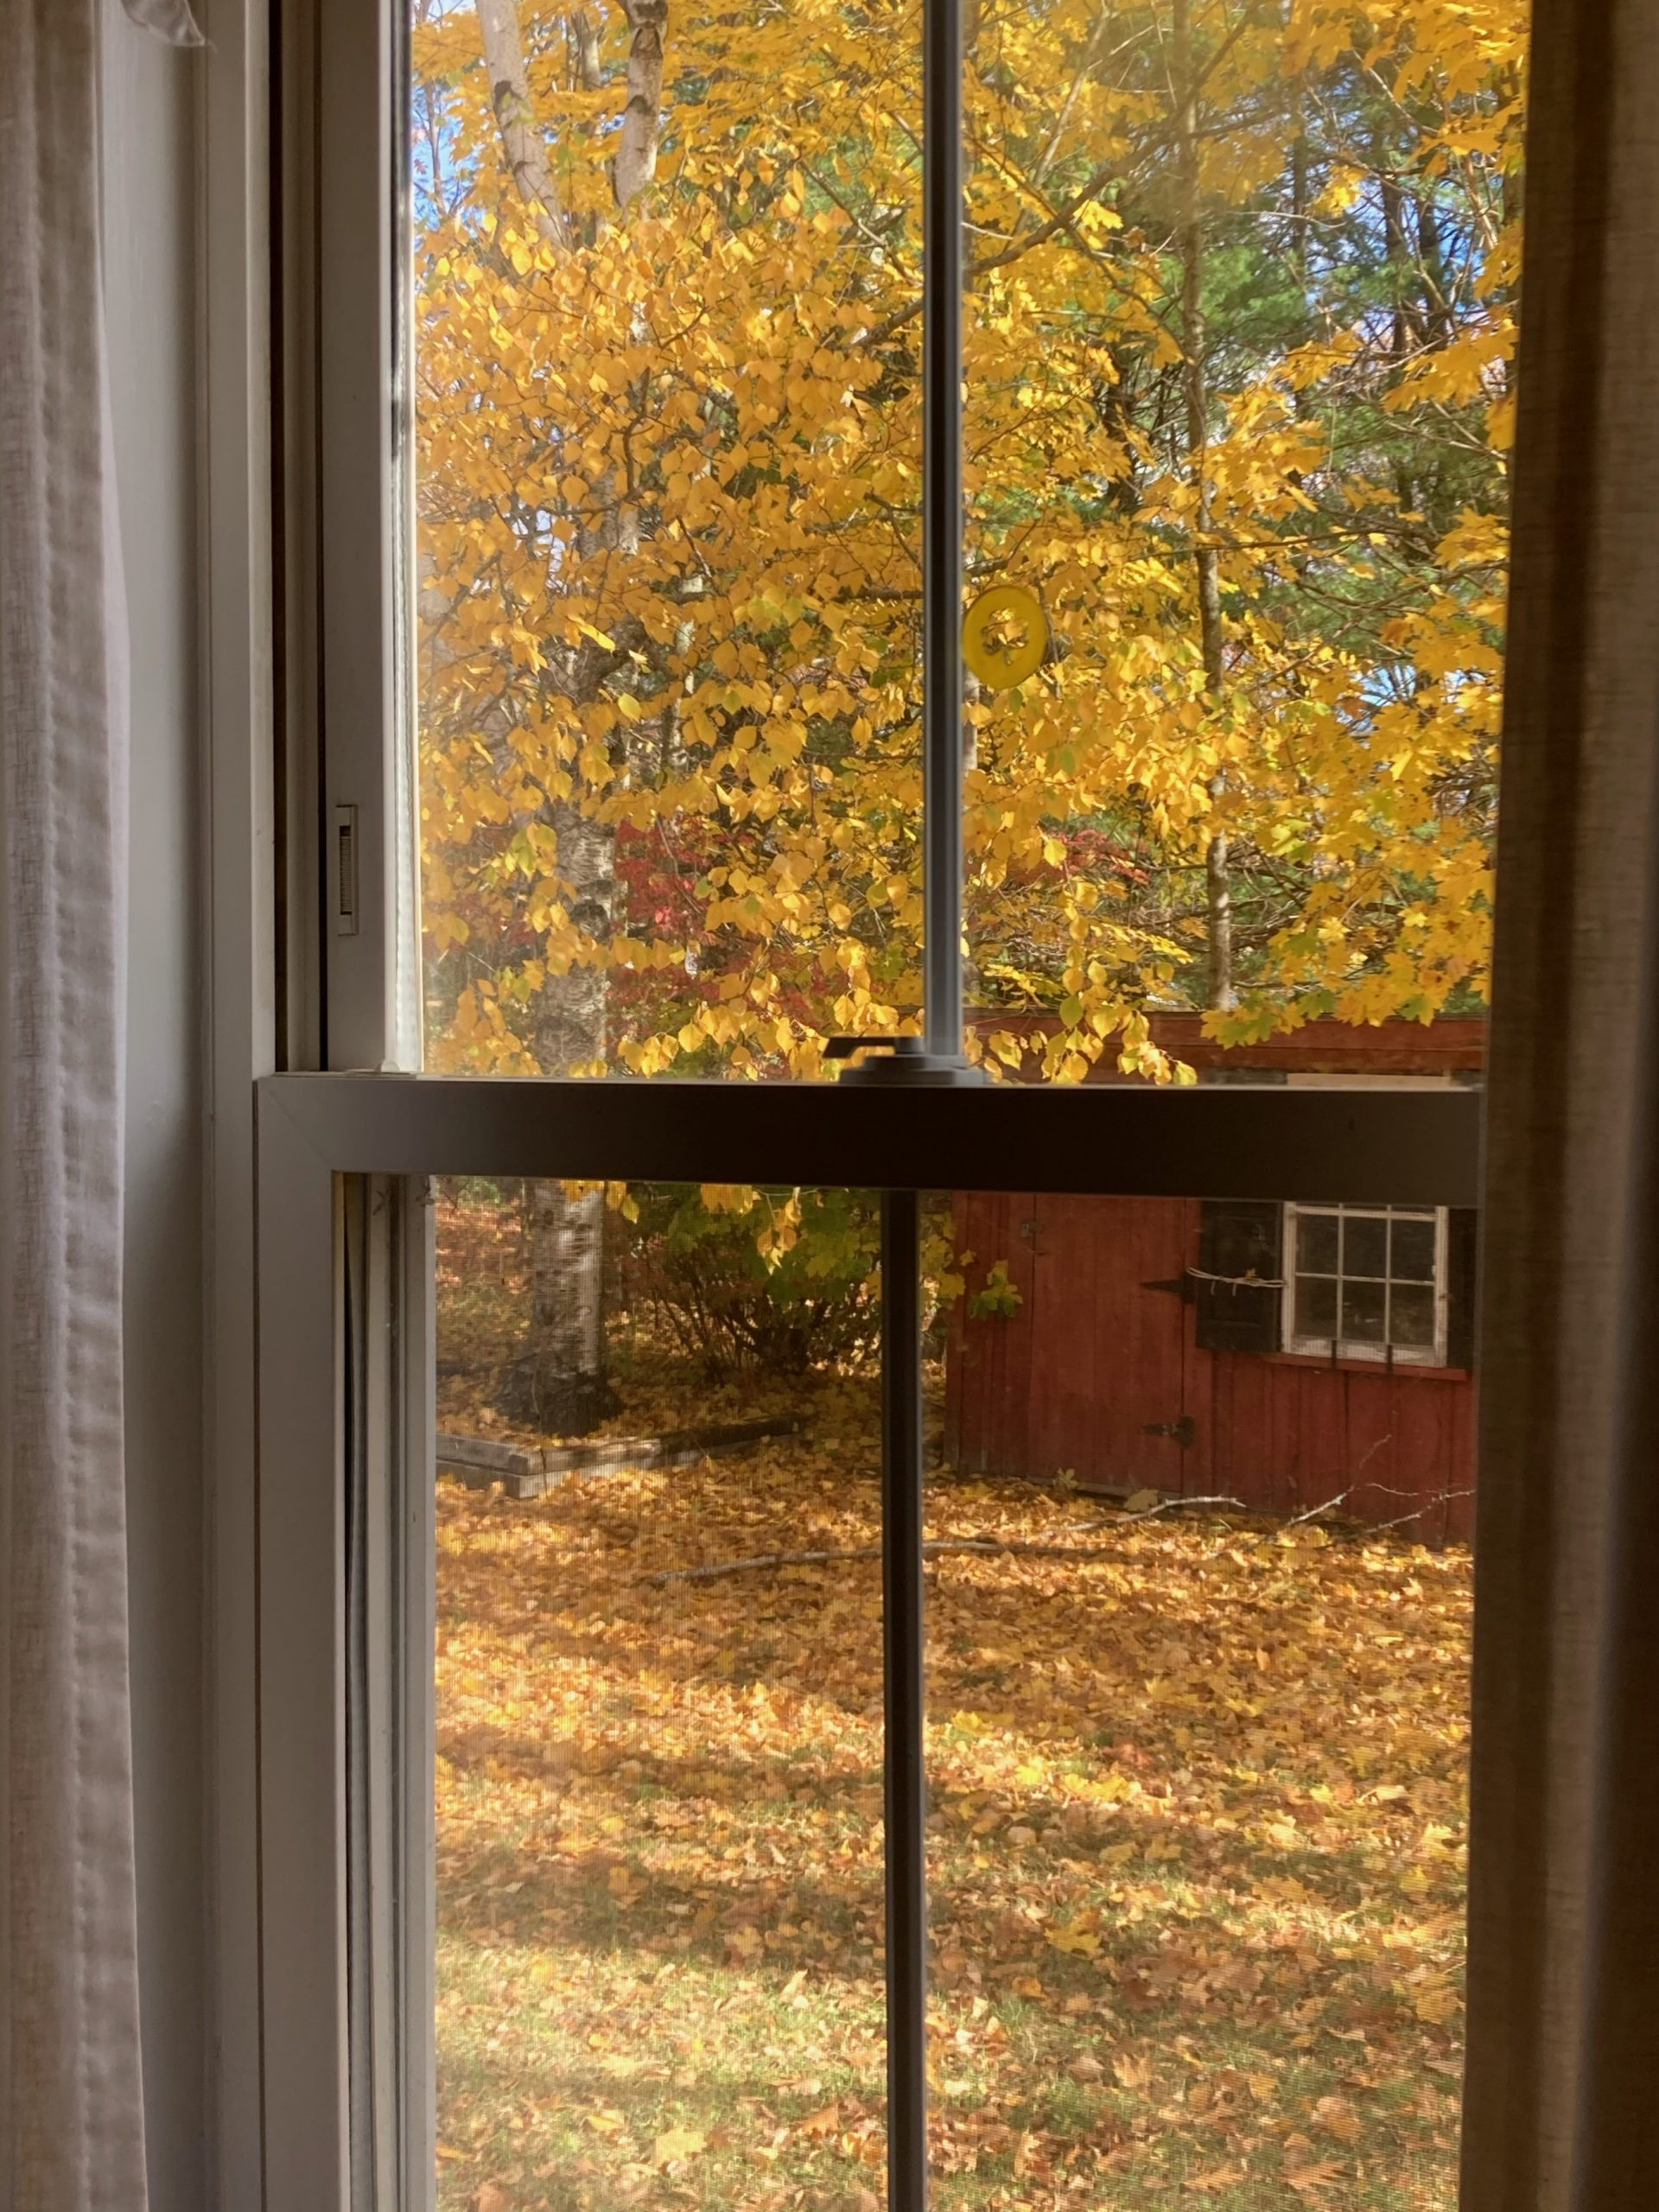 Golden leaves hang from trees and blanket the ground in this photo. A brick red shed is visible, as is the window pane of the window being looked through.